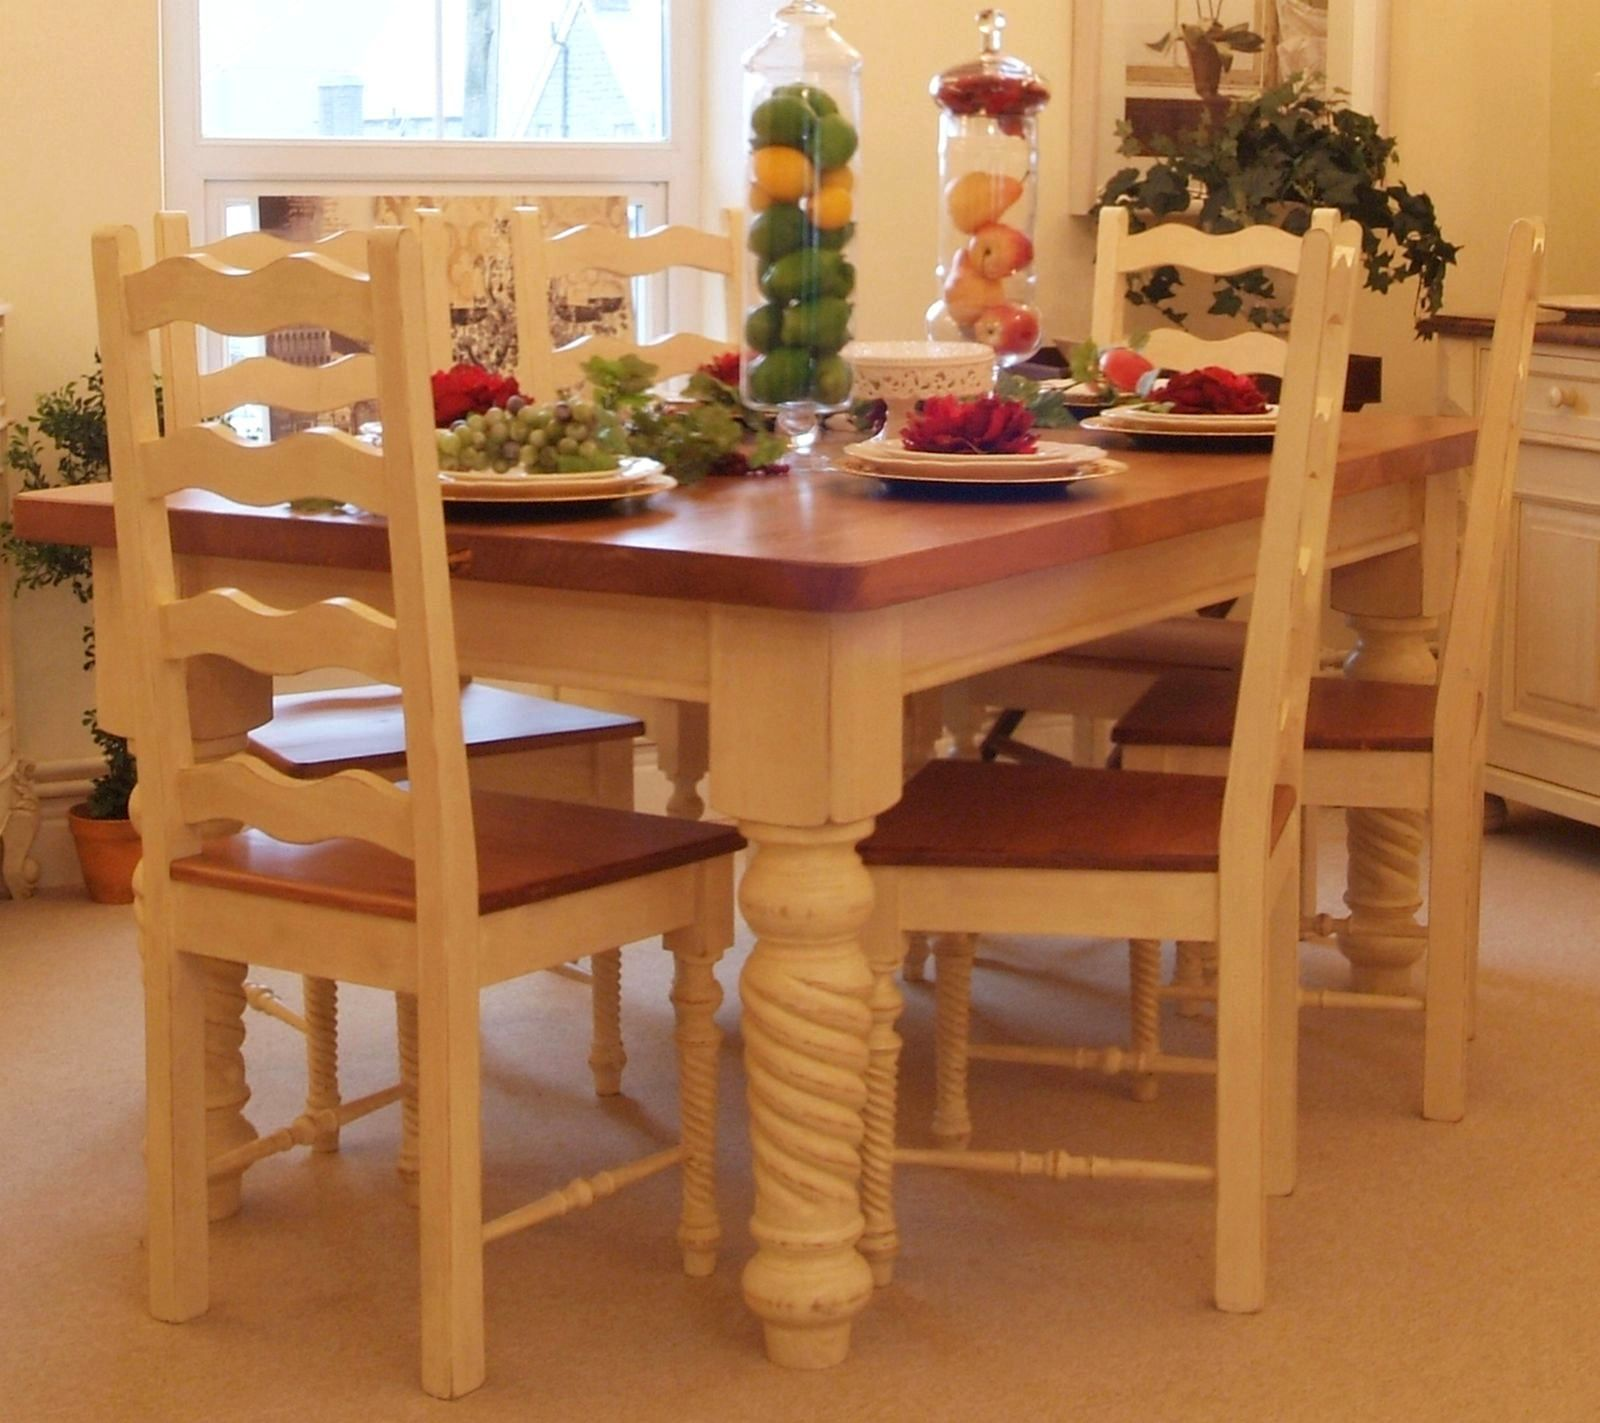 Kitchen Set Table And Chairs 17 Best Images About Kitchen Table On Pinterest Paint French